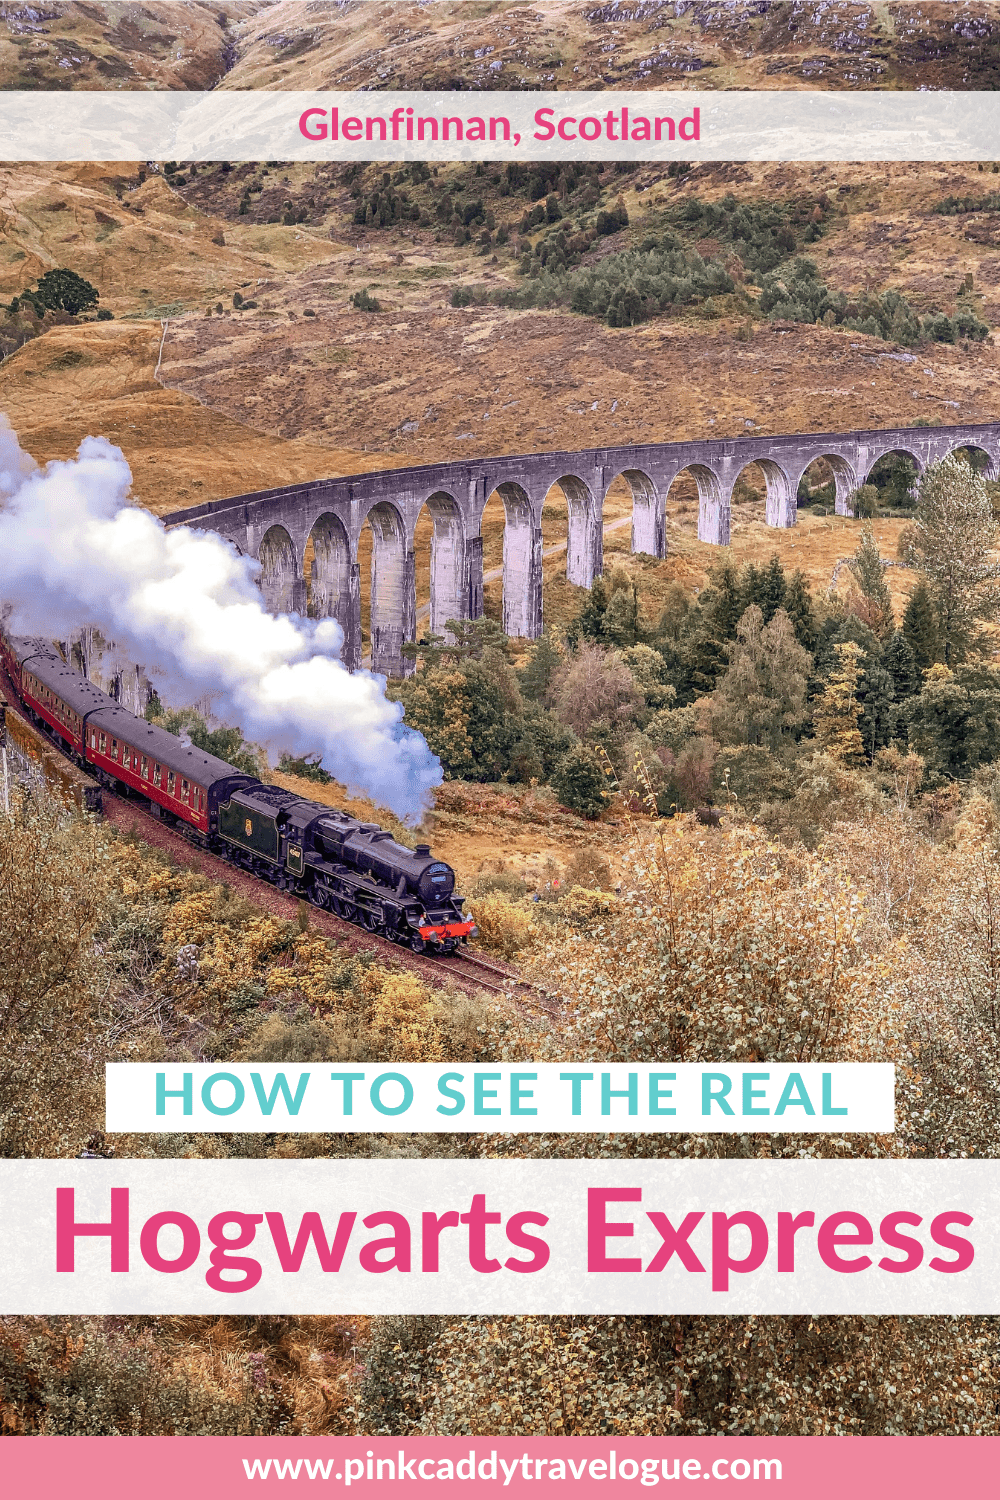 Seeing the real-life Hogwarts Express is a bucket list item for any Harry Potter fan! Check out this guide for all you need to know to see the Harry Potter train and Glenfinnan Viaduct in Scotland #scotland #harrypotter #harrypottertrain #hogwartsexpress #travel